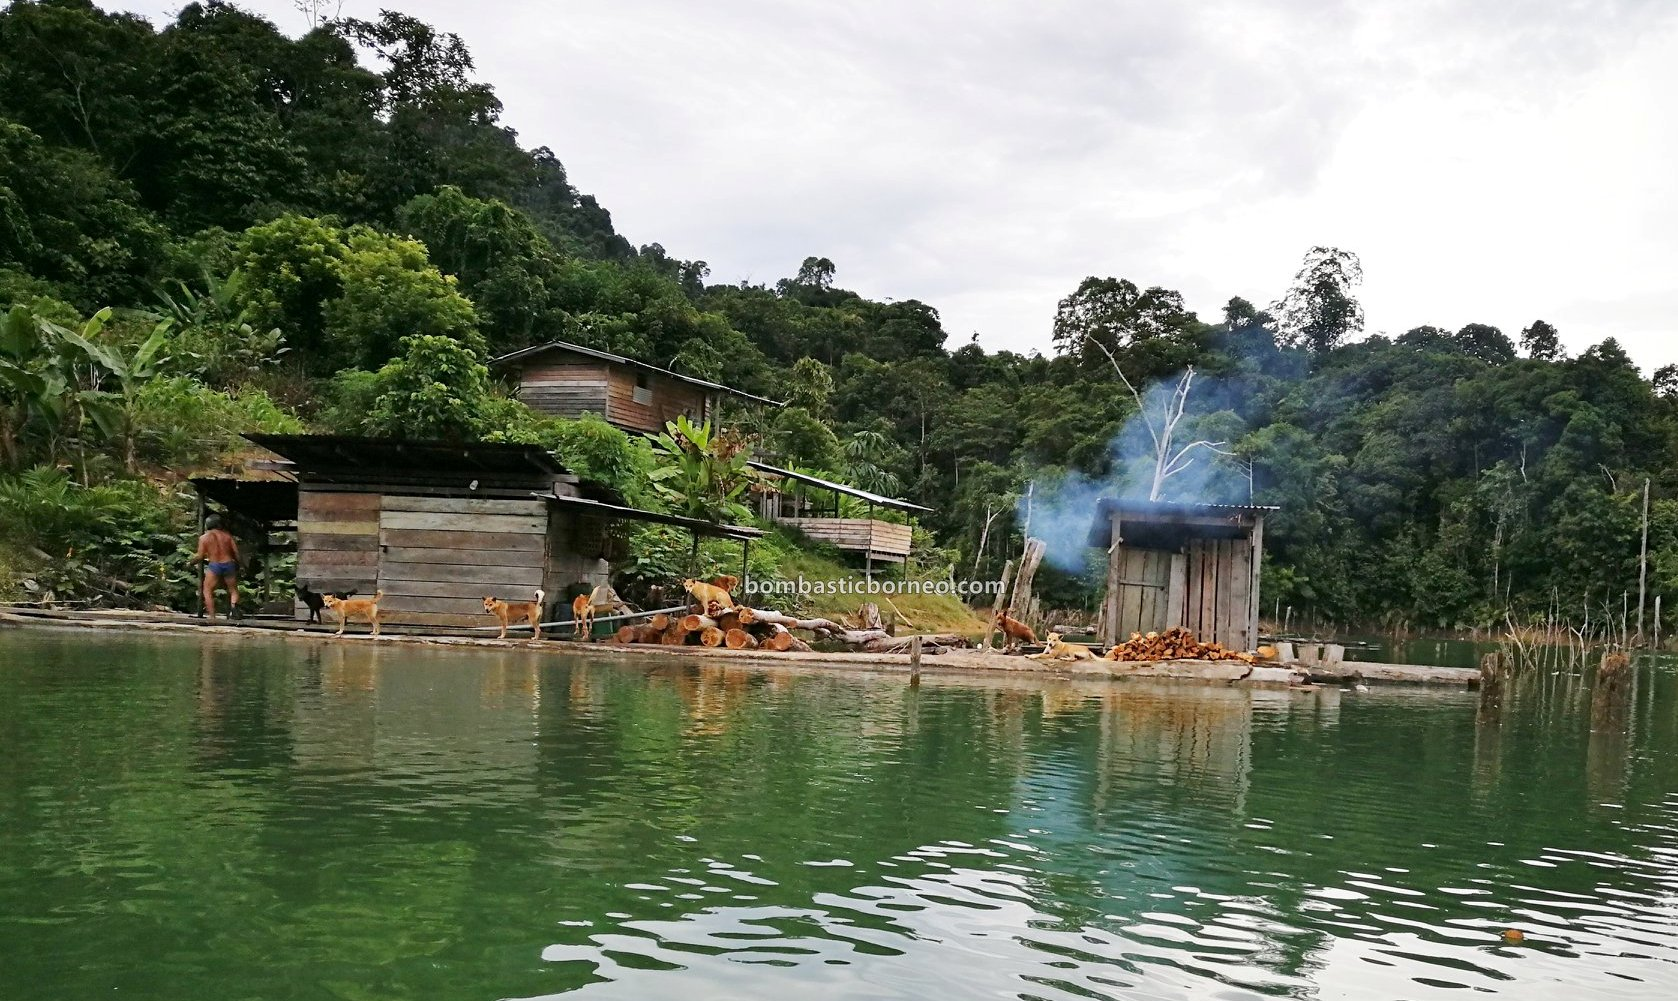 Hydroelectric Power Dam, empangan, orang ulu, destination, Ikan semah, traditional, fishing, Malaysia, native, Tourism, tourist attraction, travel guide, Borneo, 砂拉越峇贡水坝, 马来西亚狩猎之旅,